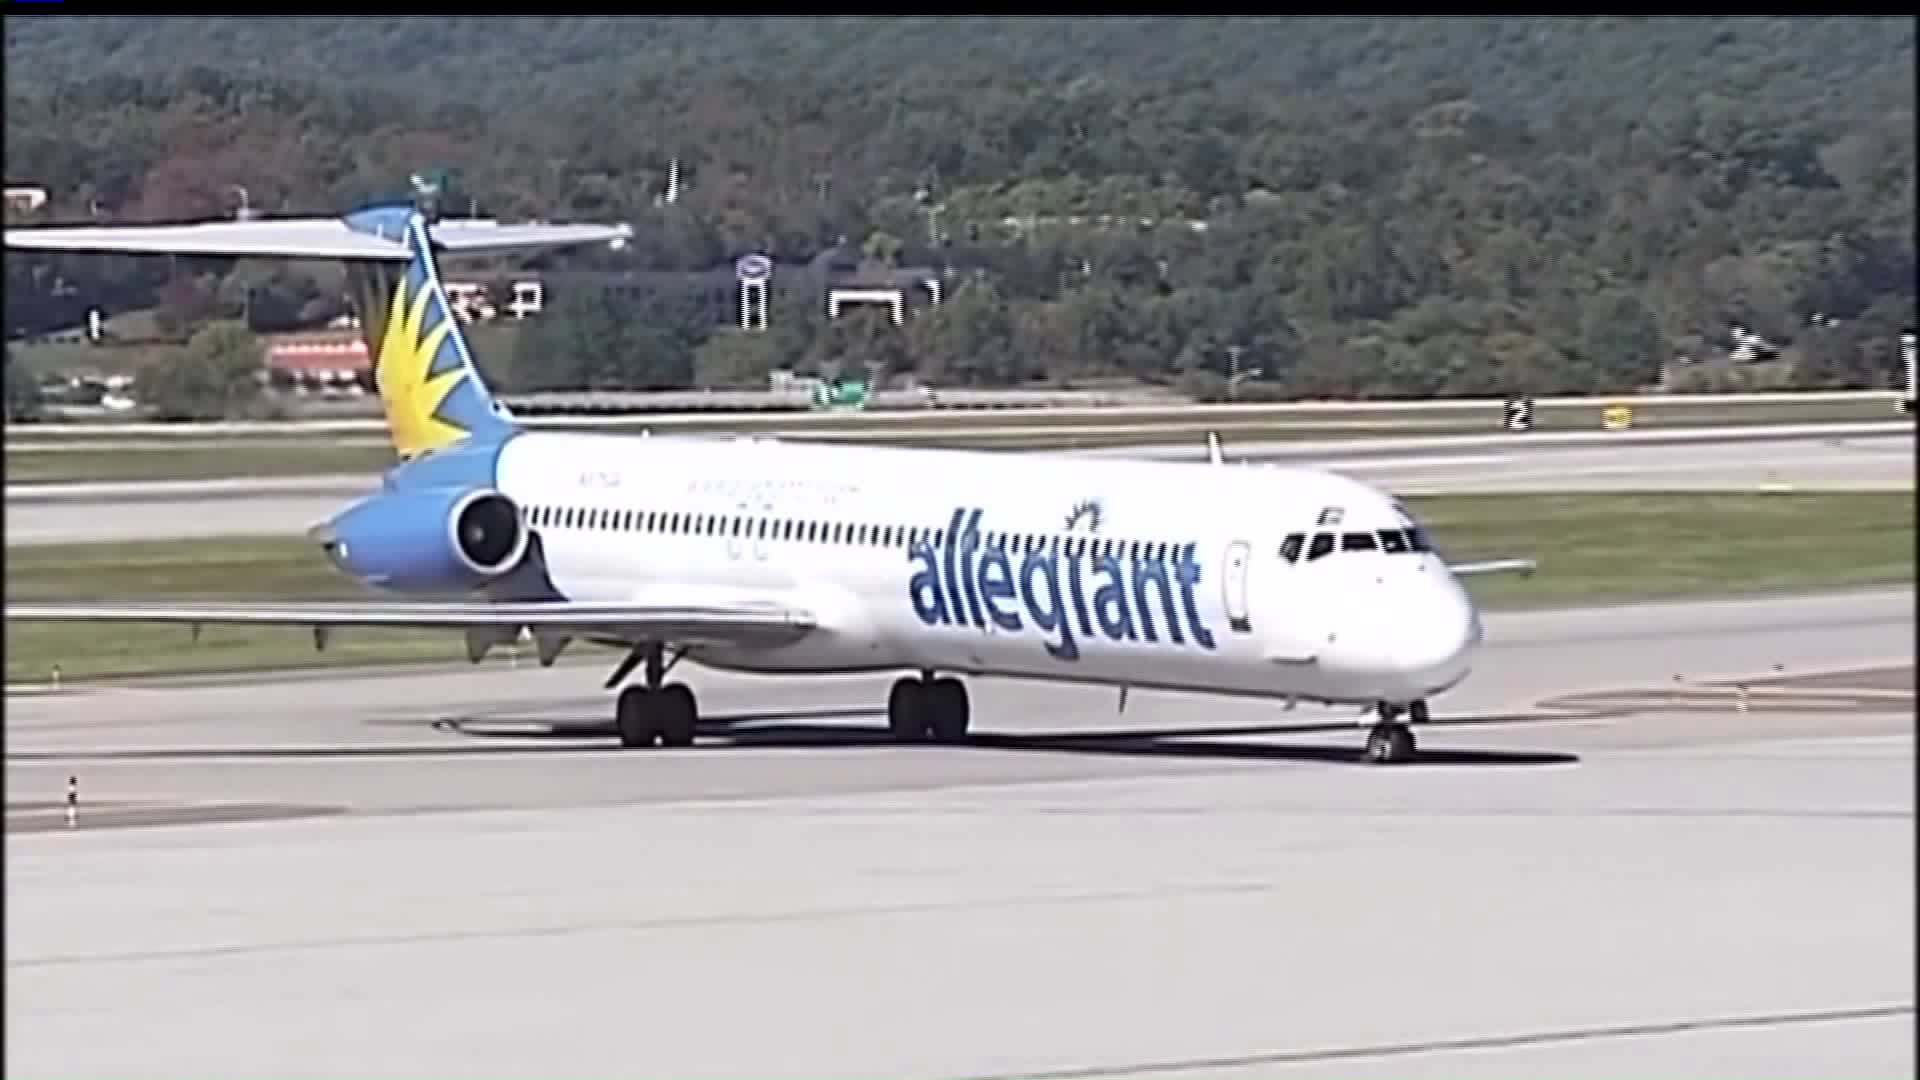 Allegiant Air Announces Des Moines International Airport to Become 20th Aircraft Base 1